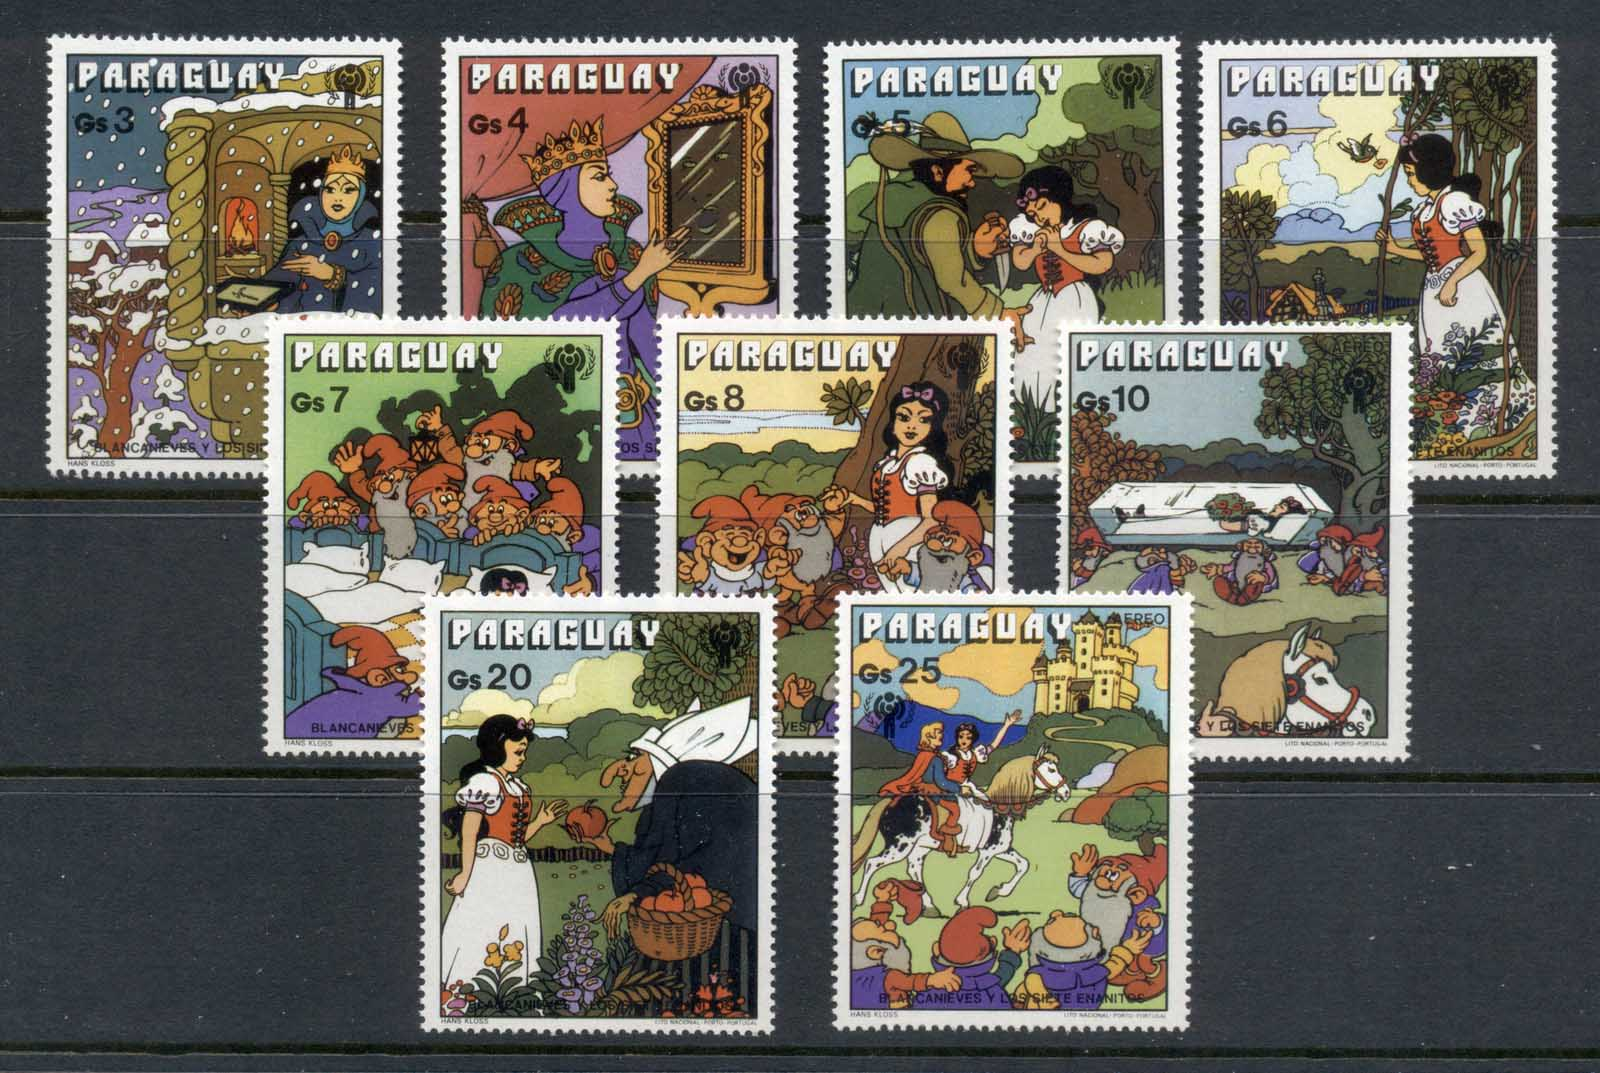 Paraguay 1978 IYC International year of the Child, Snow White MUH